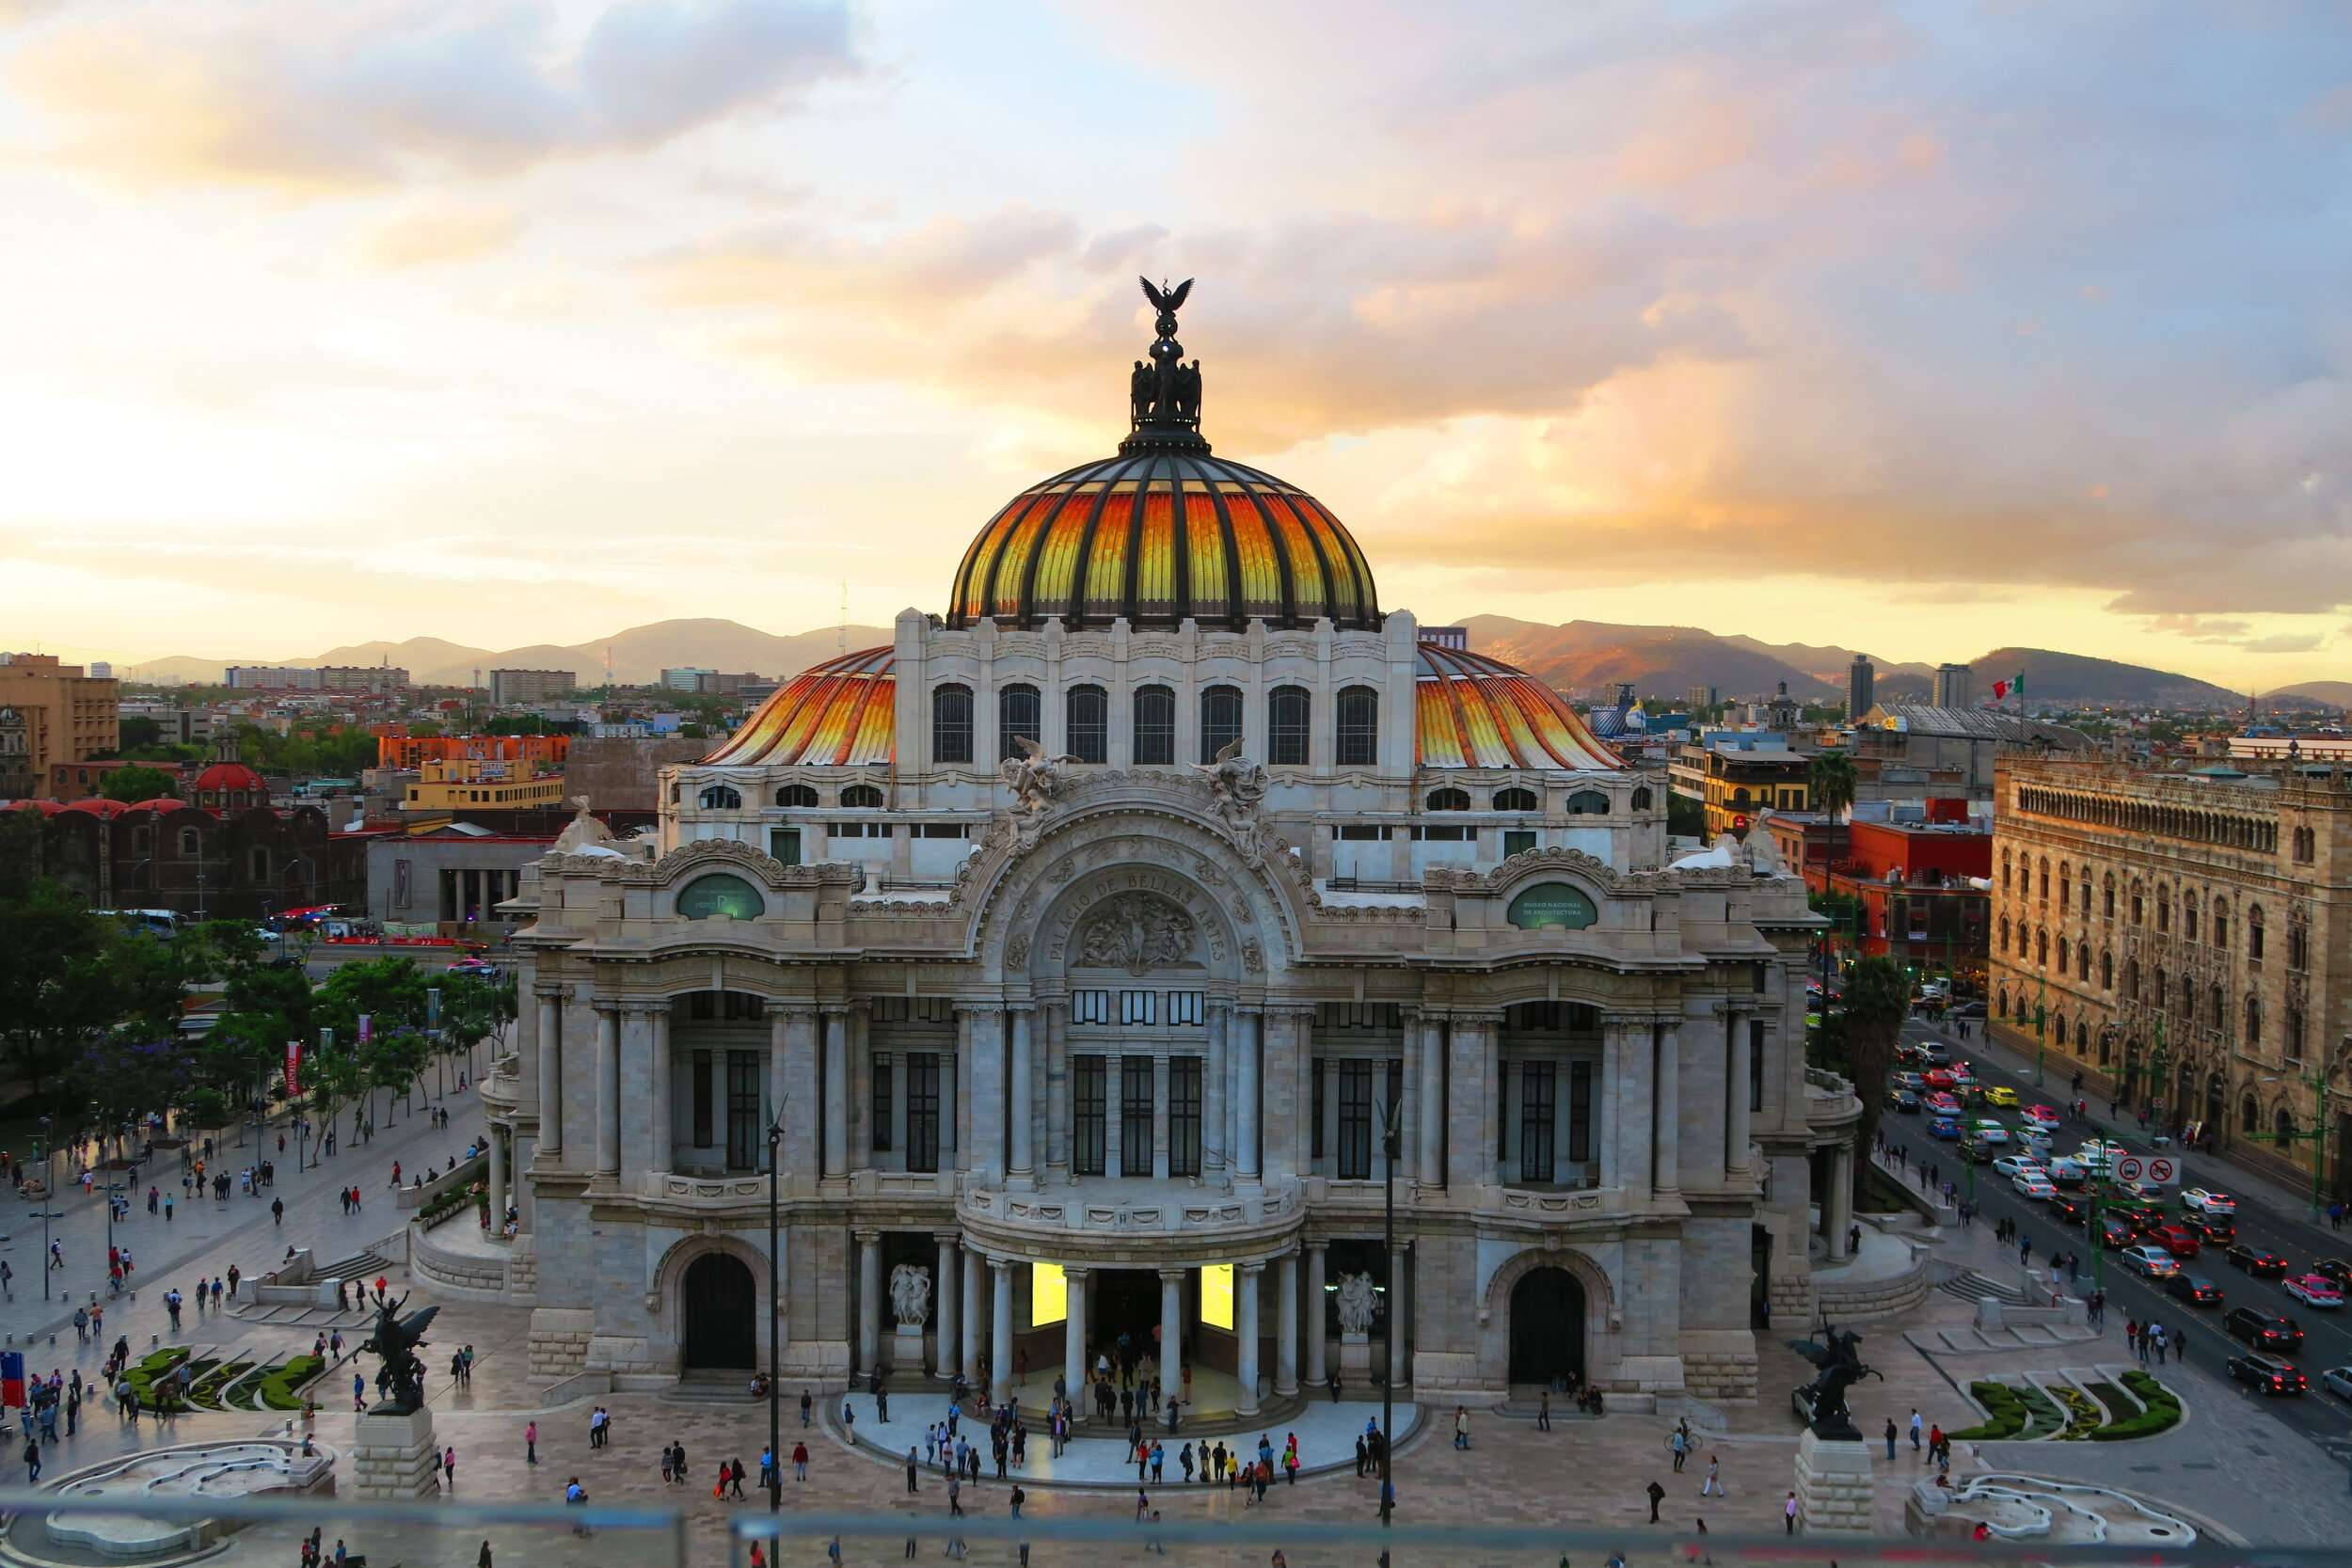 the beautiful Palacio de Bellas Artes in Mexico City